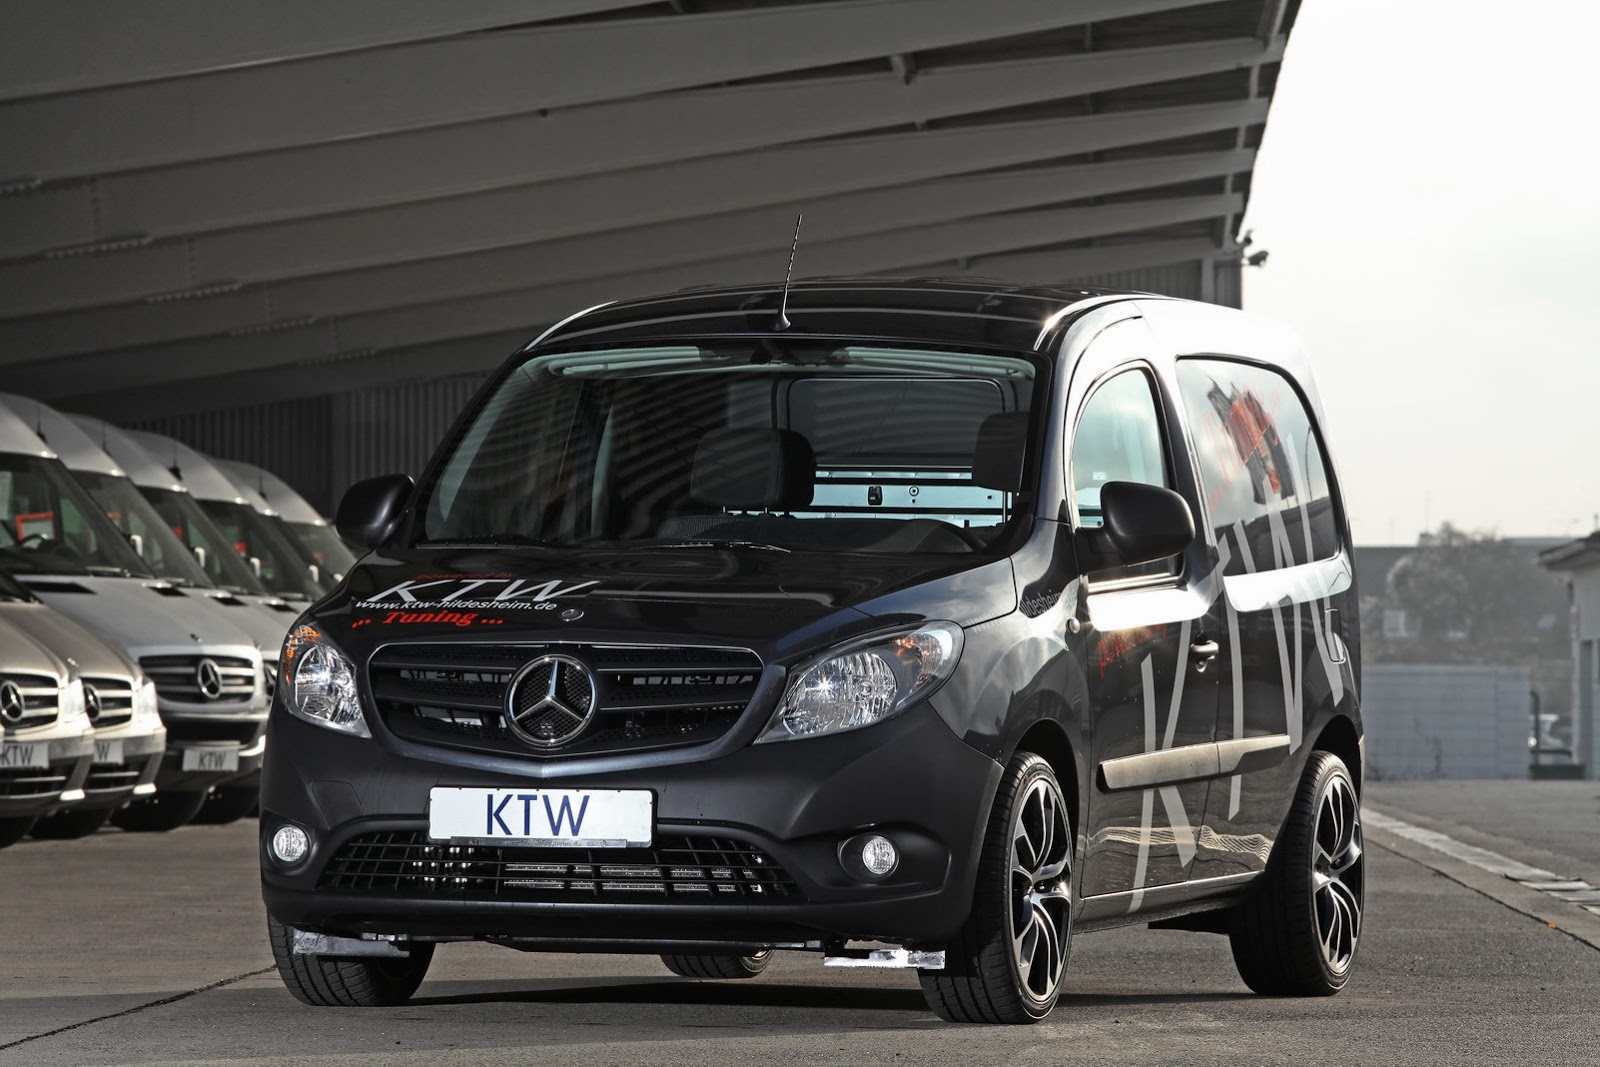 mercedes citan by ktw tuning autoevolution. Black Bedroom Furniture Sets. Home Design Ideas